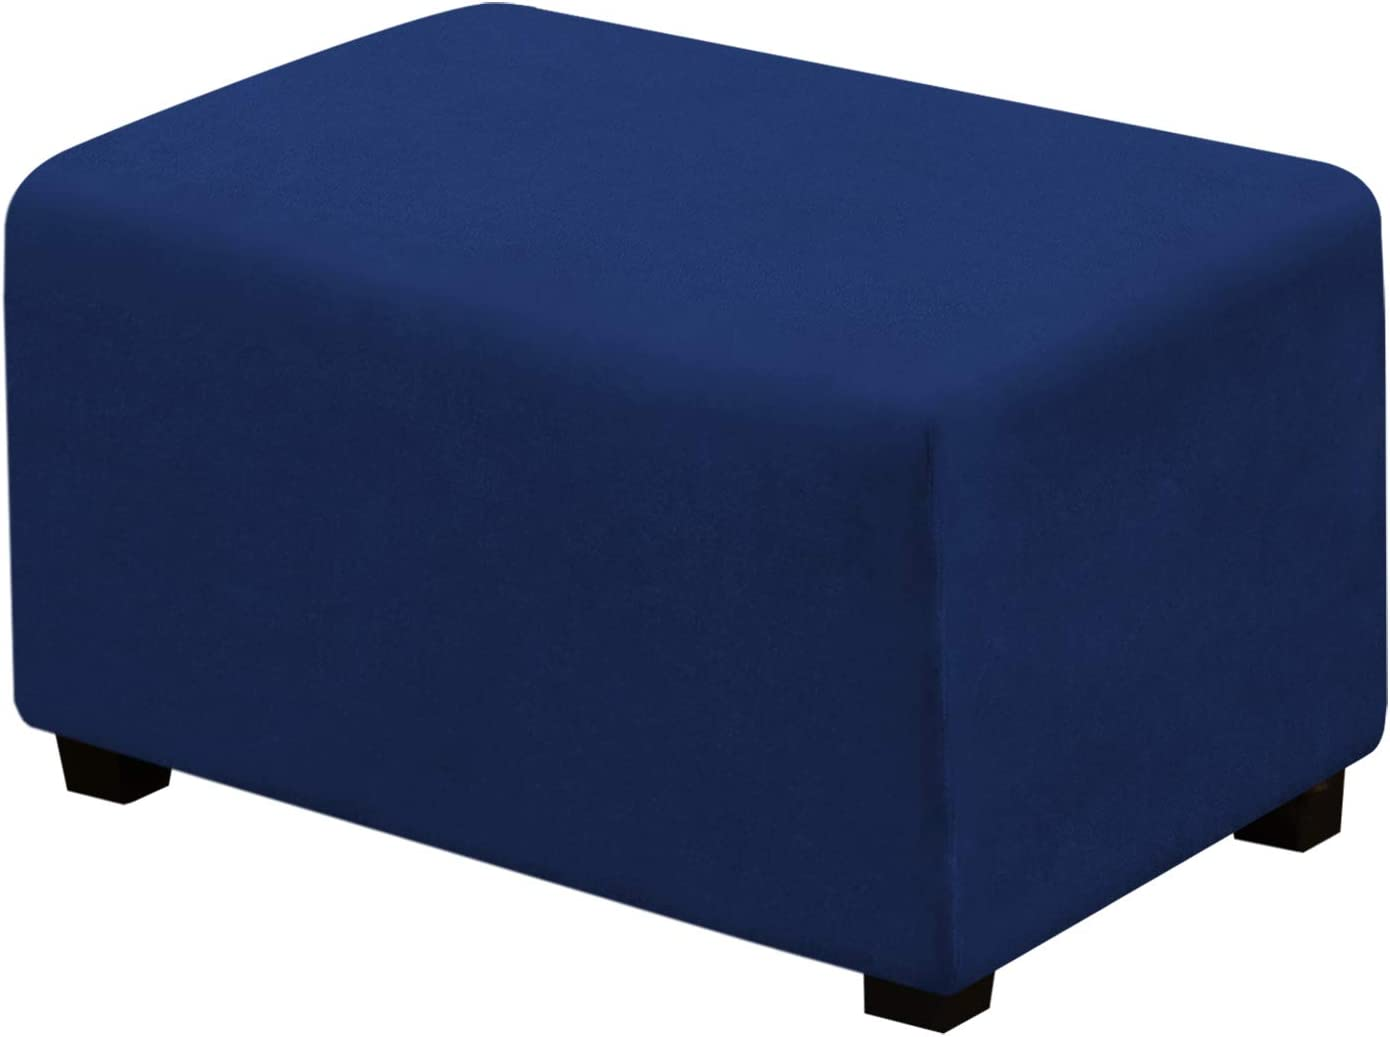 Suede Ottoman Cover Ottoman Slipcovers Removable Footstool Protector Velvet Plush 1 Piece Water Repellent Furniture Protector with Elastic Bottom, Machine Washable (Ottoman Large, Navy Blue)